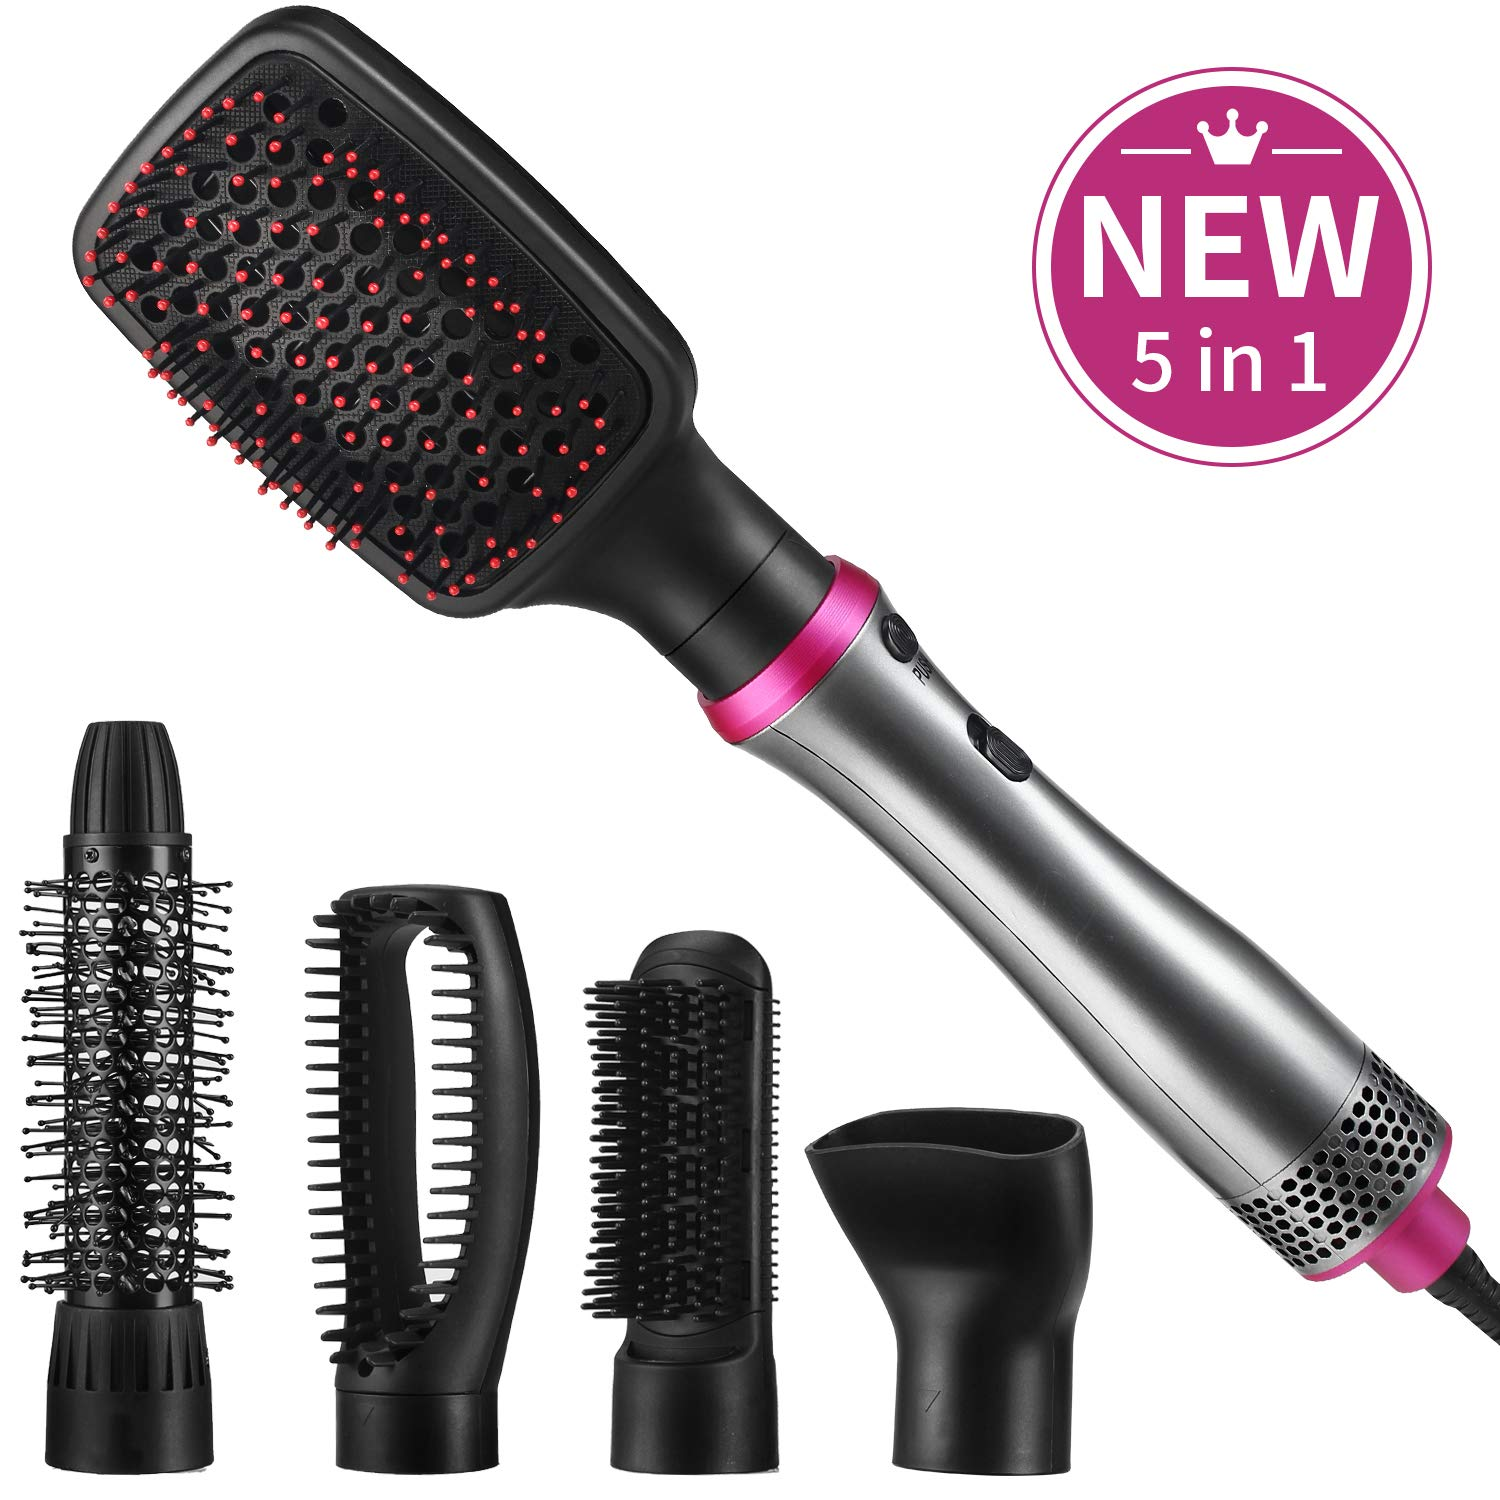 Hair Dryer Brush,ASOGO 5 In 1 Hot Air Brush Multifunctional One Step Hair Styler Volumizer for Drying Straightening Curling Styling Salon Negative Ion Hair Comb Blow Dryer Brush Grey 110V US outlet